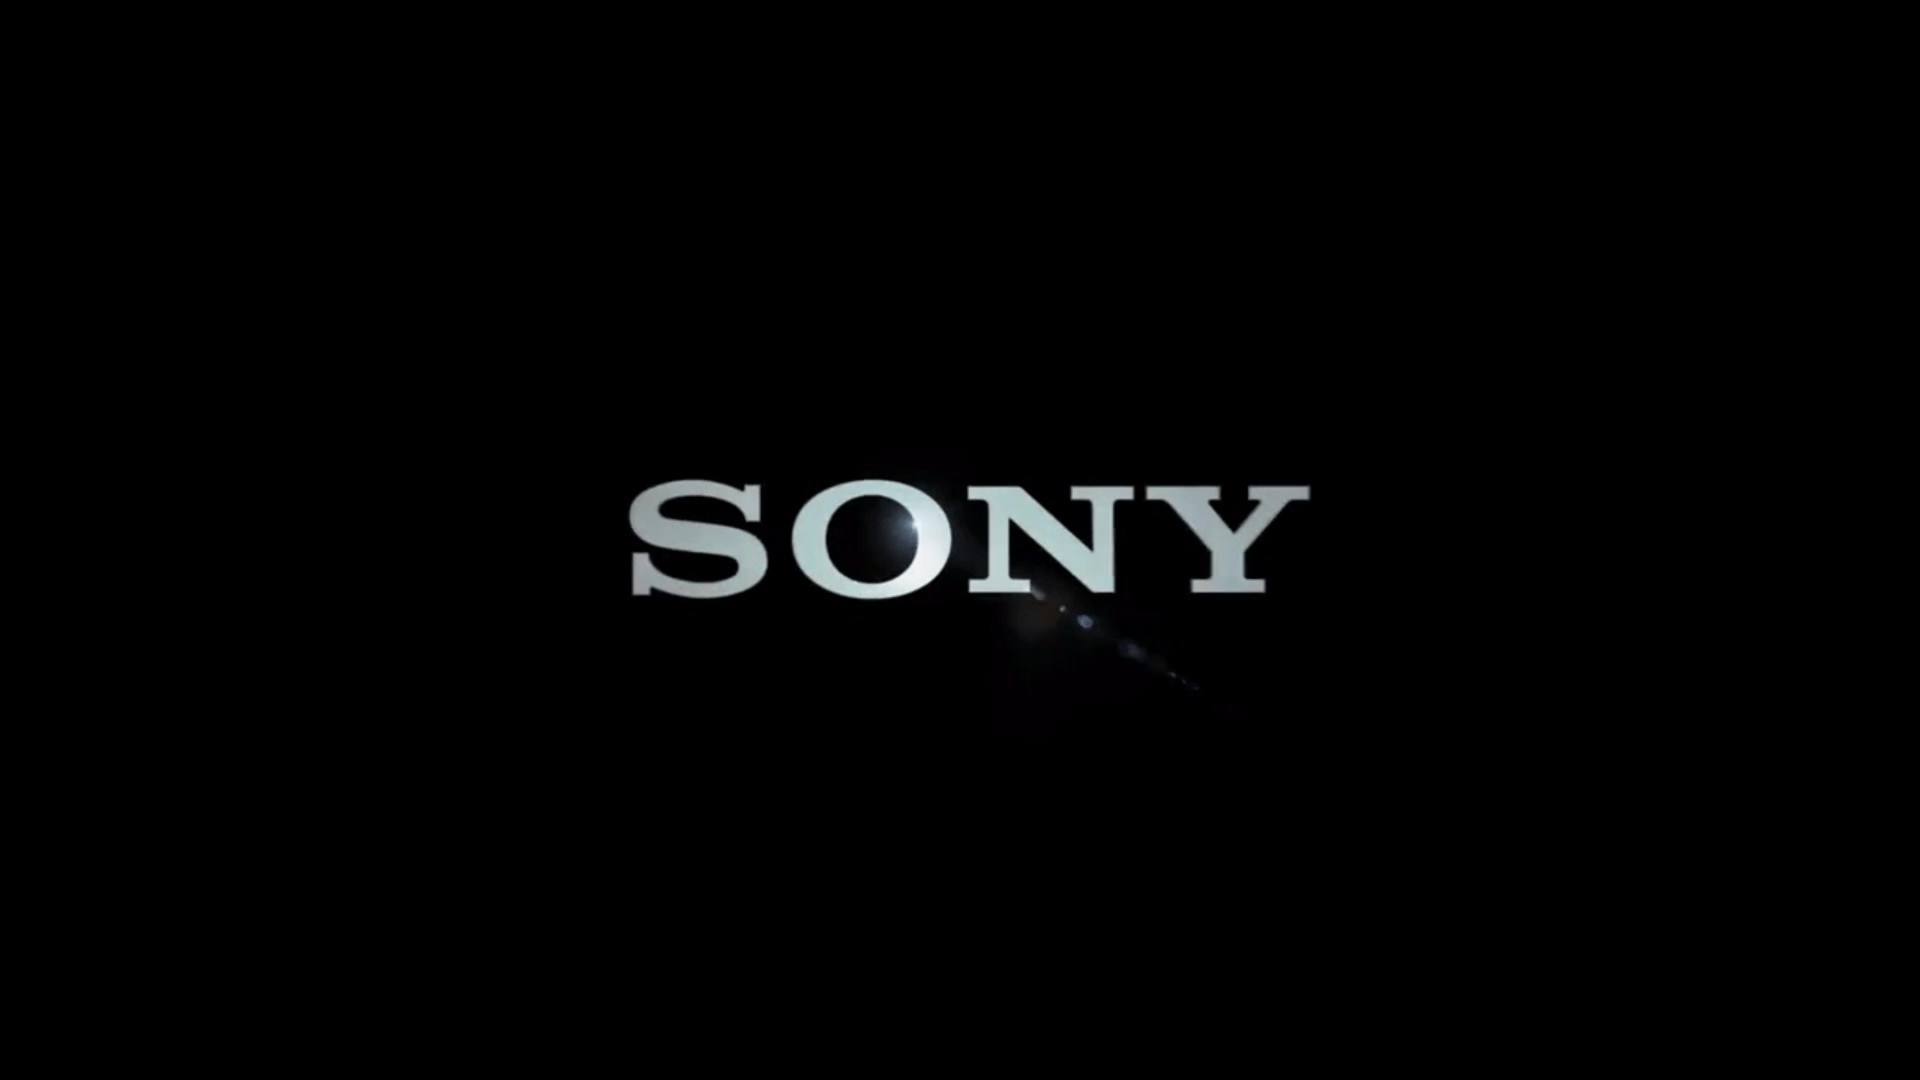 1920x1080 Bespoke Music production for Sony Xperia advert.